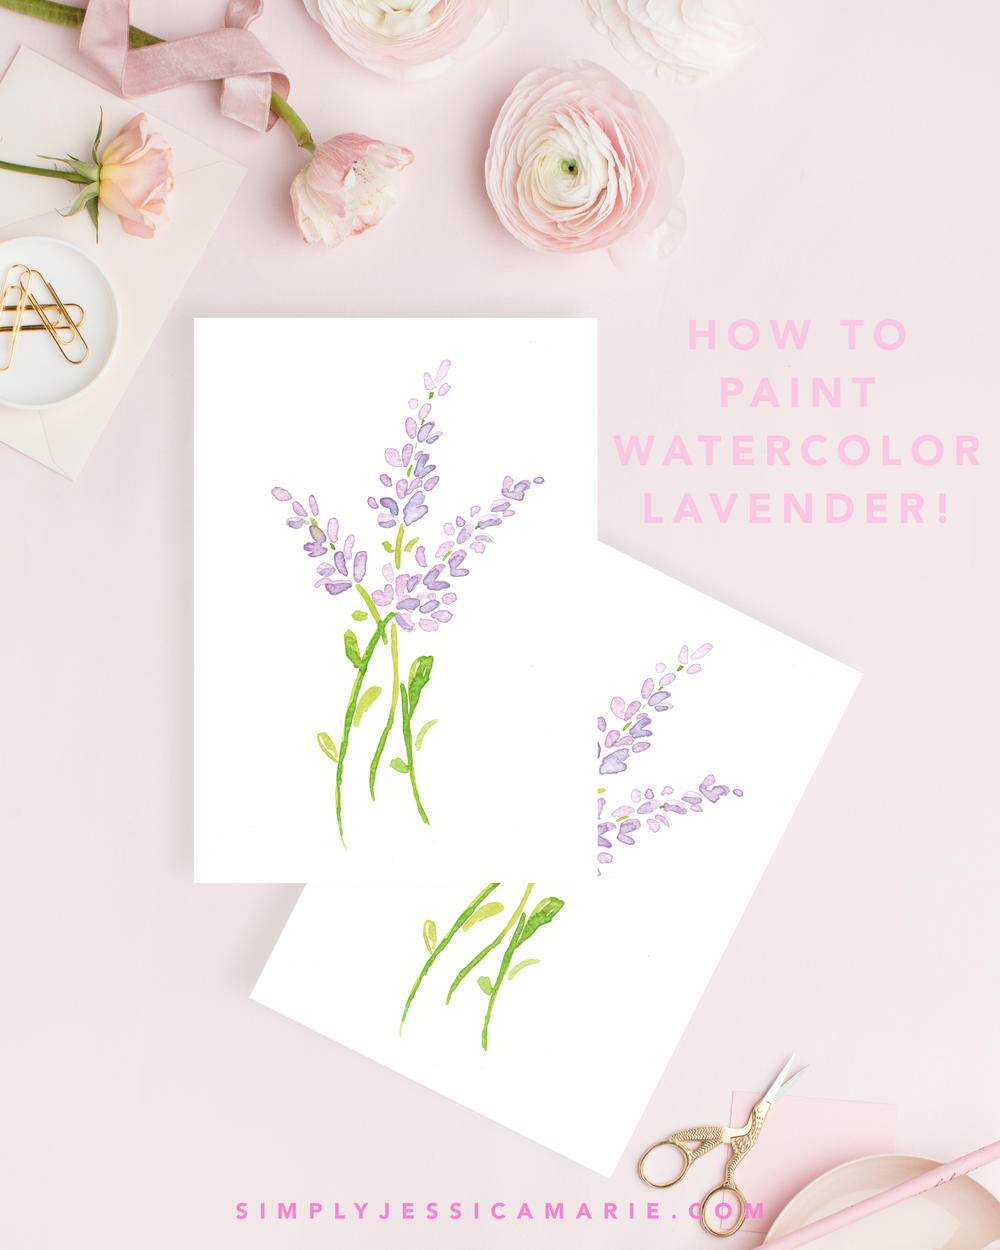 How to paint watercolor lavender! Fun and free watercolor videos by Simply Jessica Marie! Learn to mix new colors each week and paint with that color! | SC Stockshop